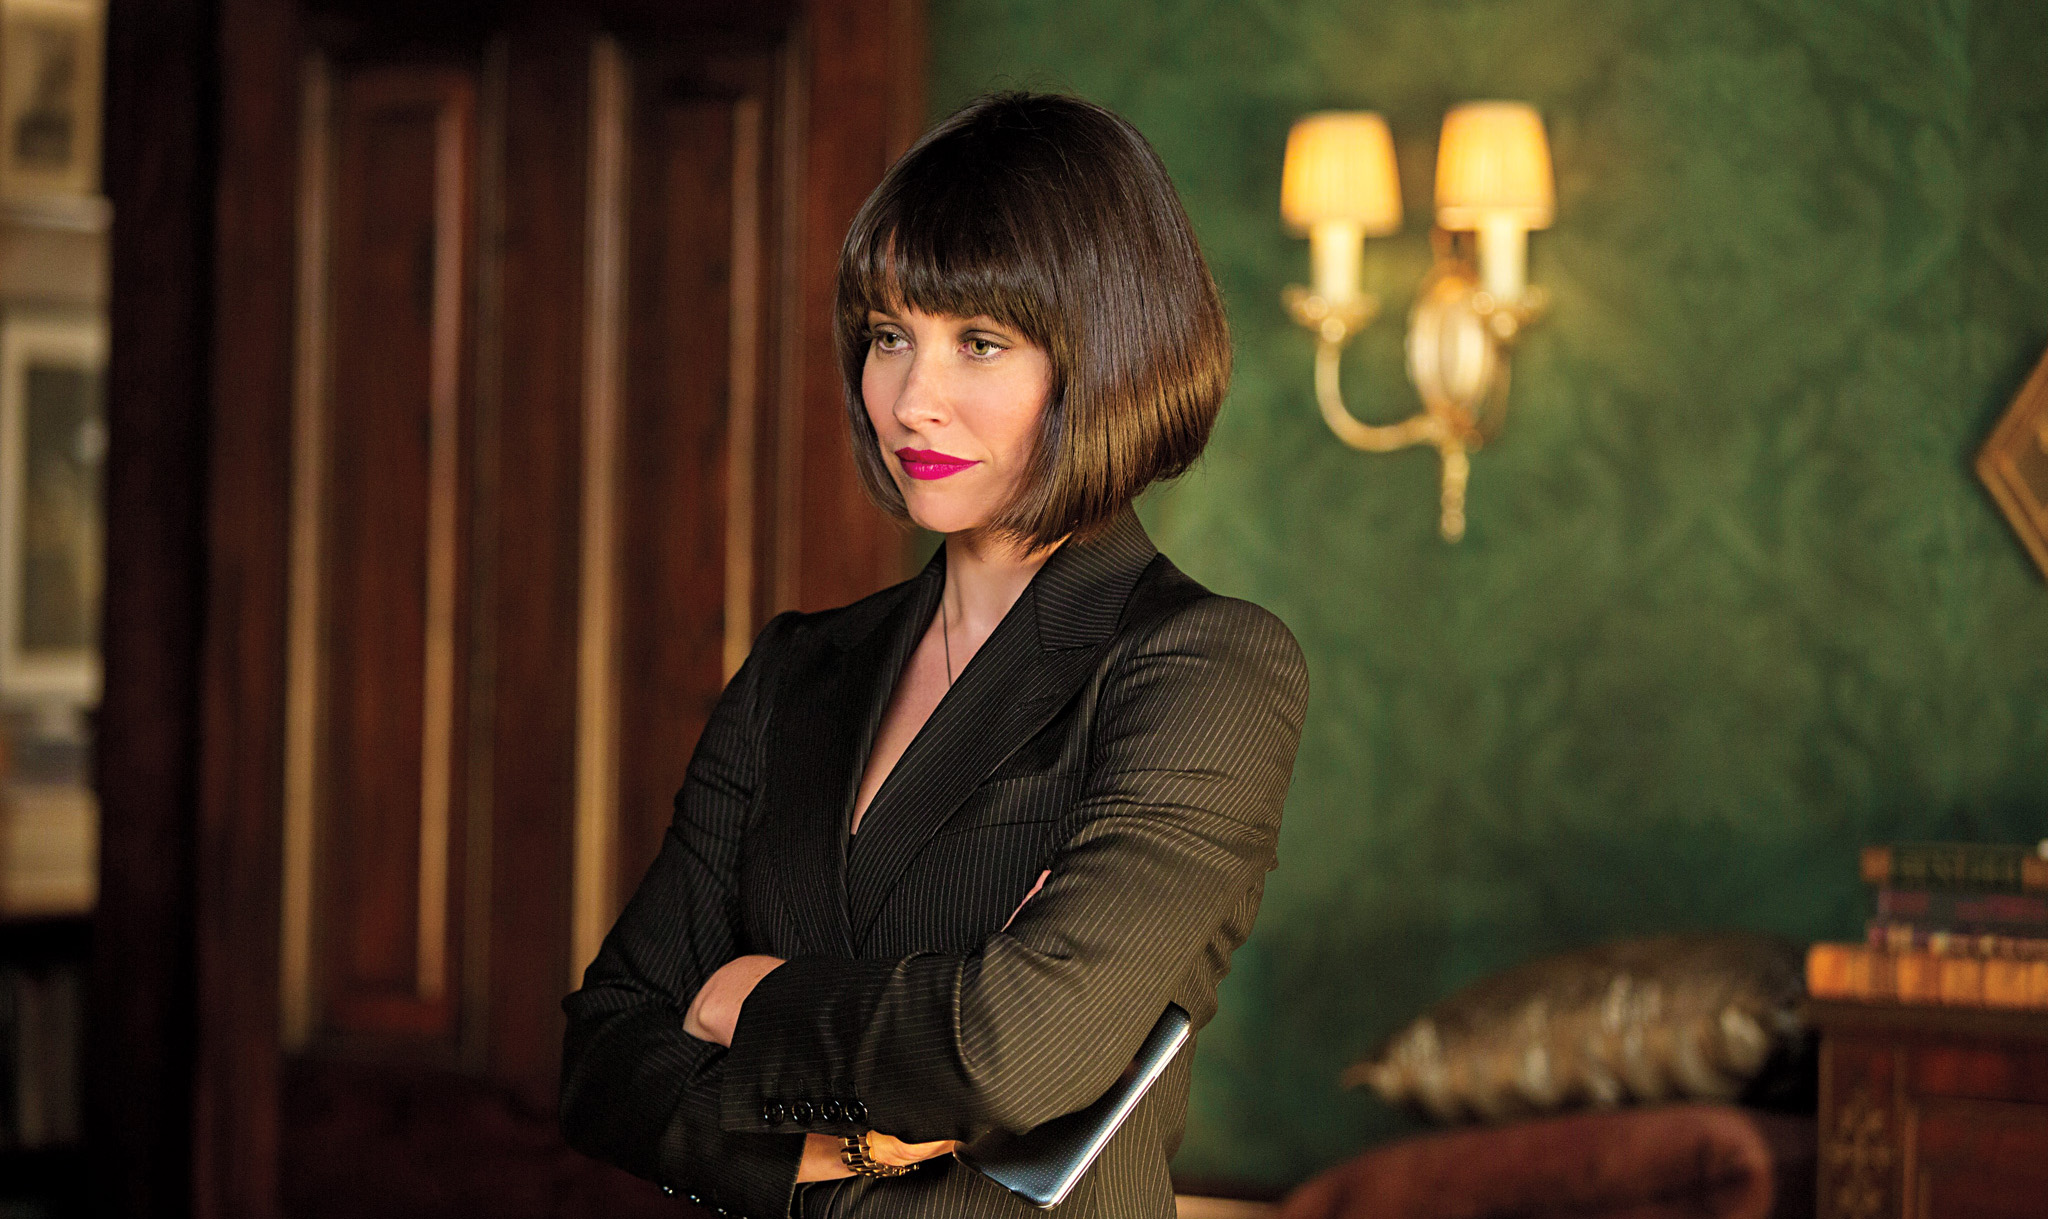 Evangeline Lilly as Hope van Dyne, daughter of Scott's mentor Hank Pym.